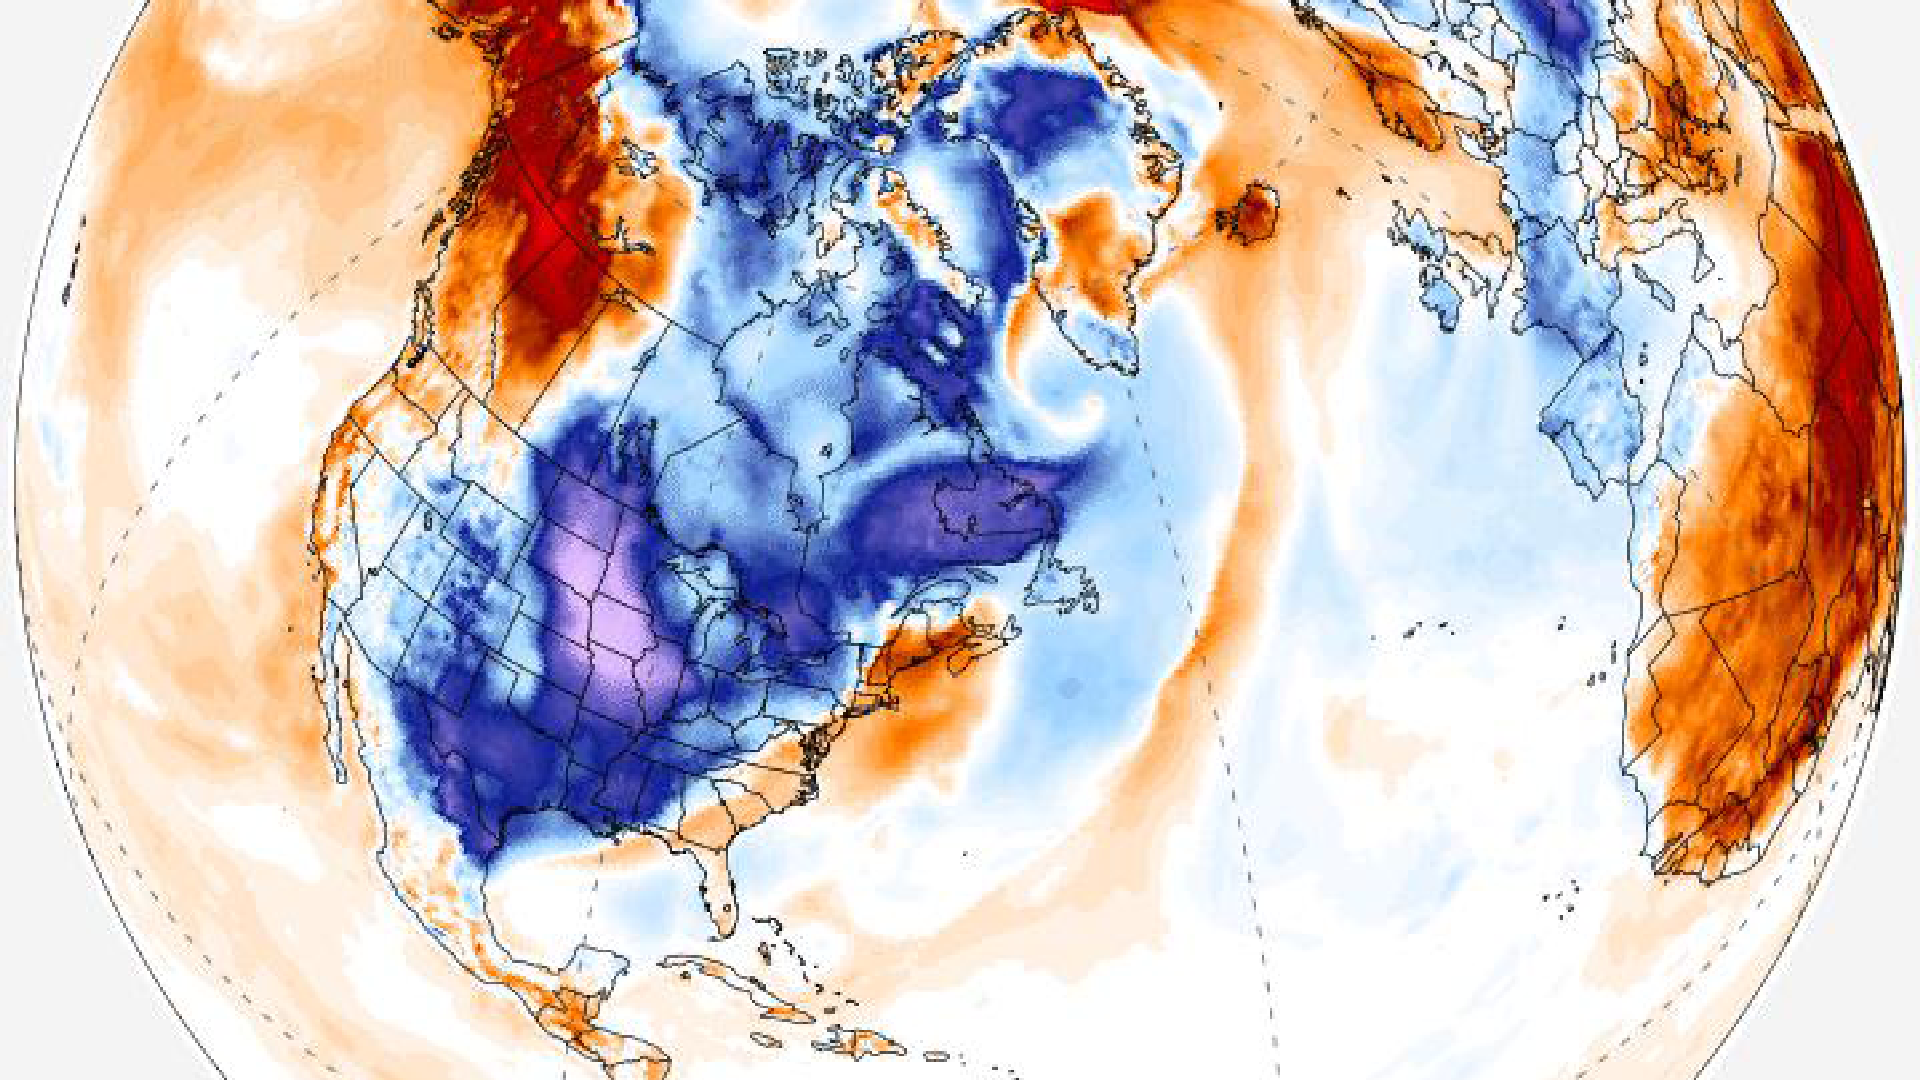 A frigid, wild weather pattern will strike the eastern half of the U.S. and parts of Europe